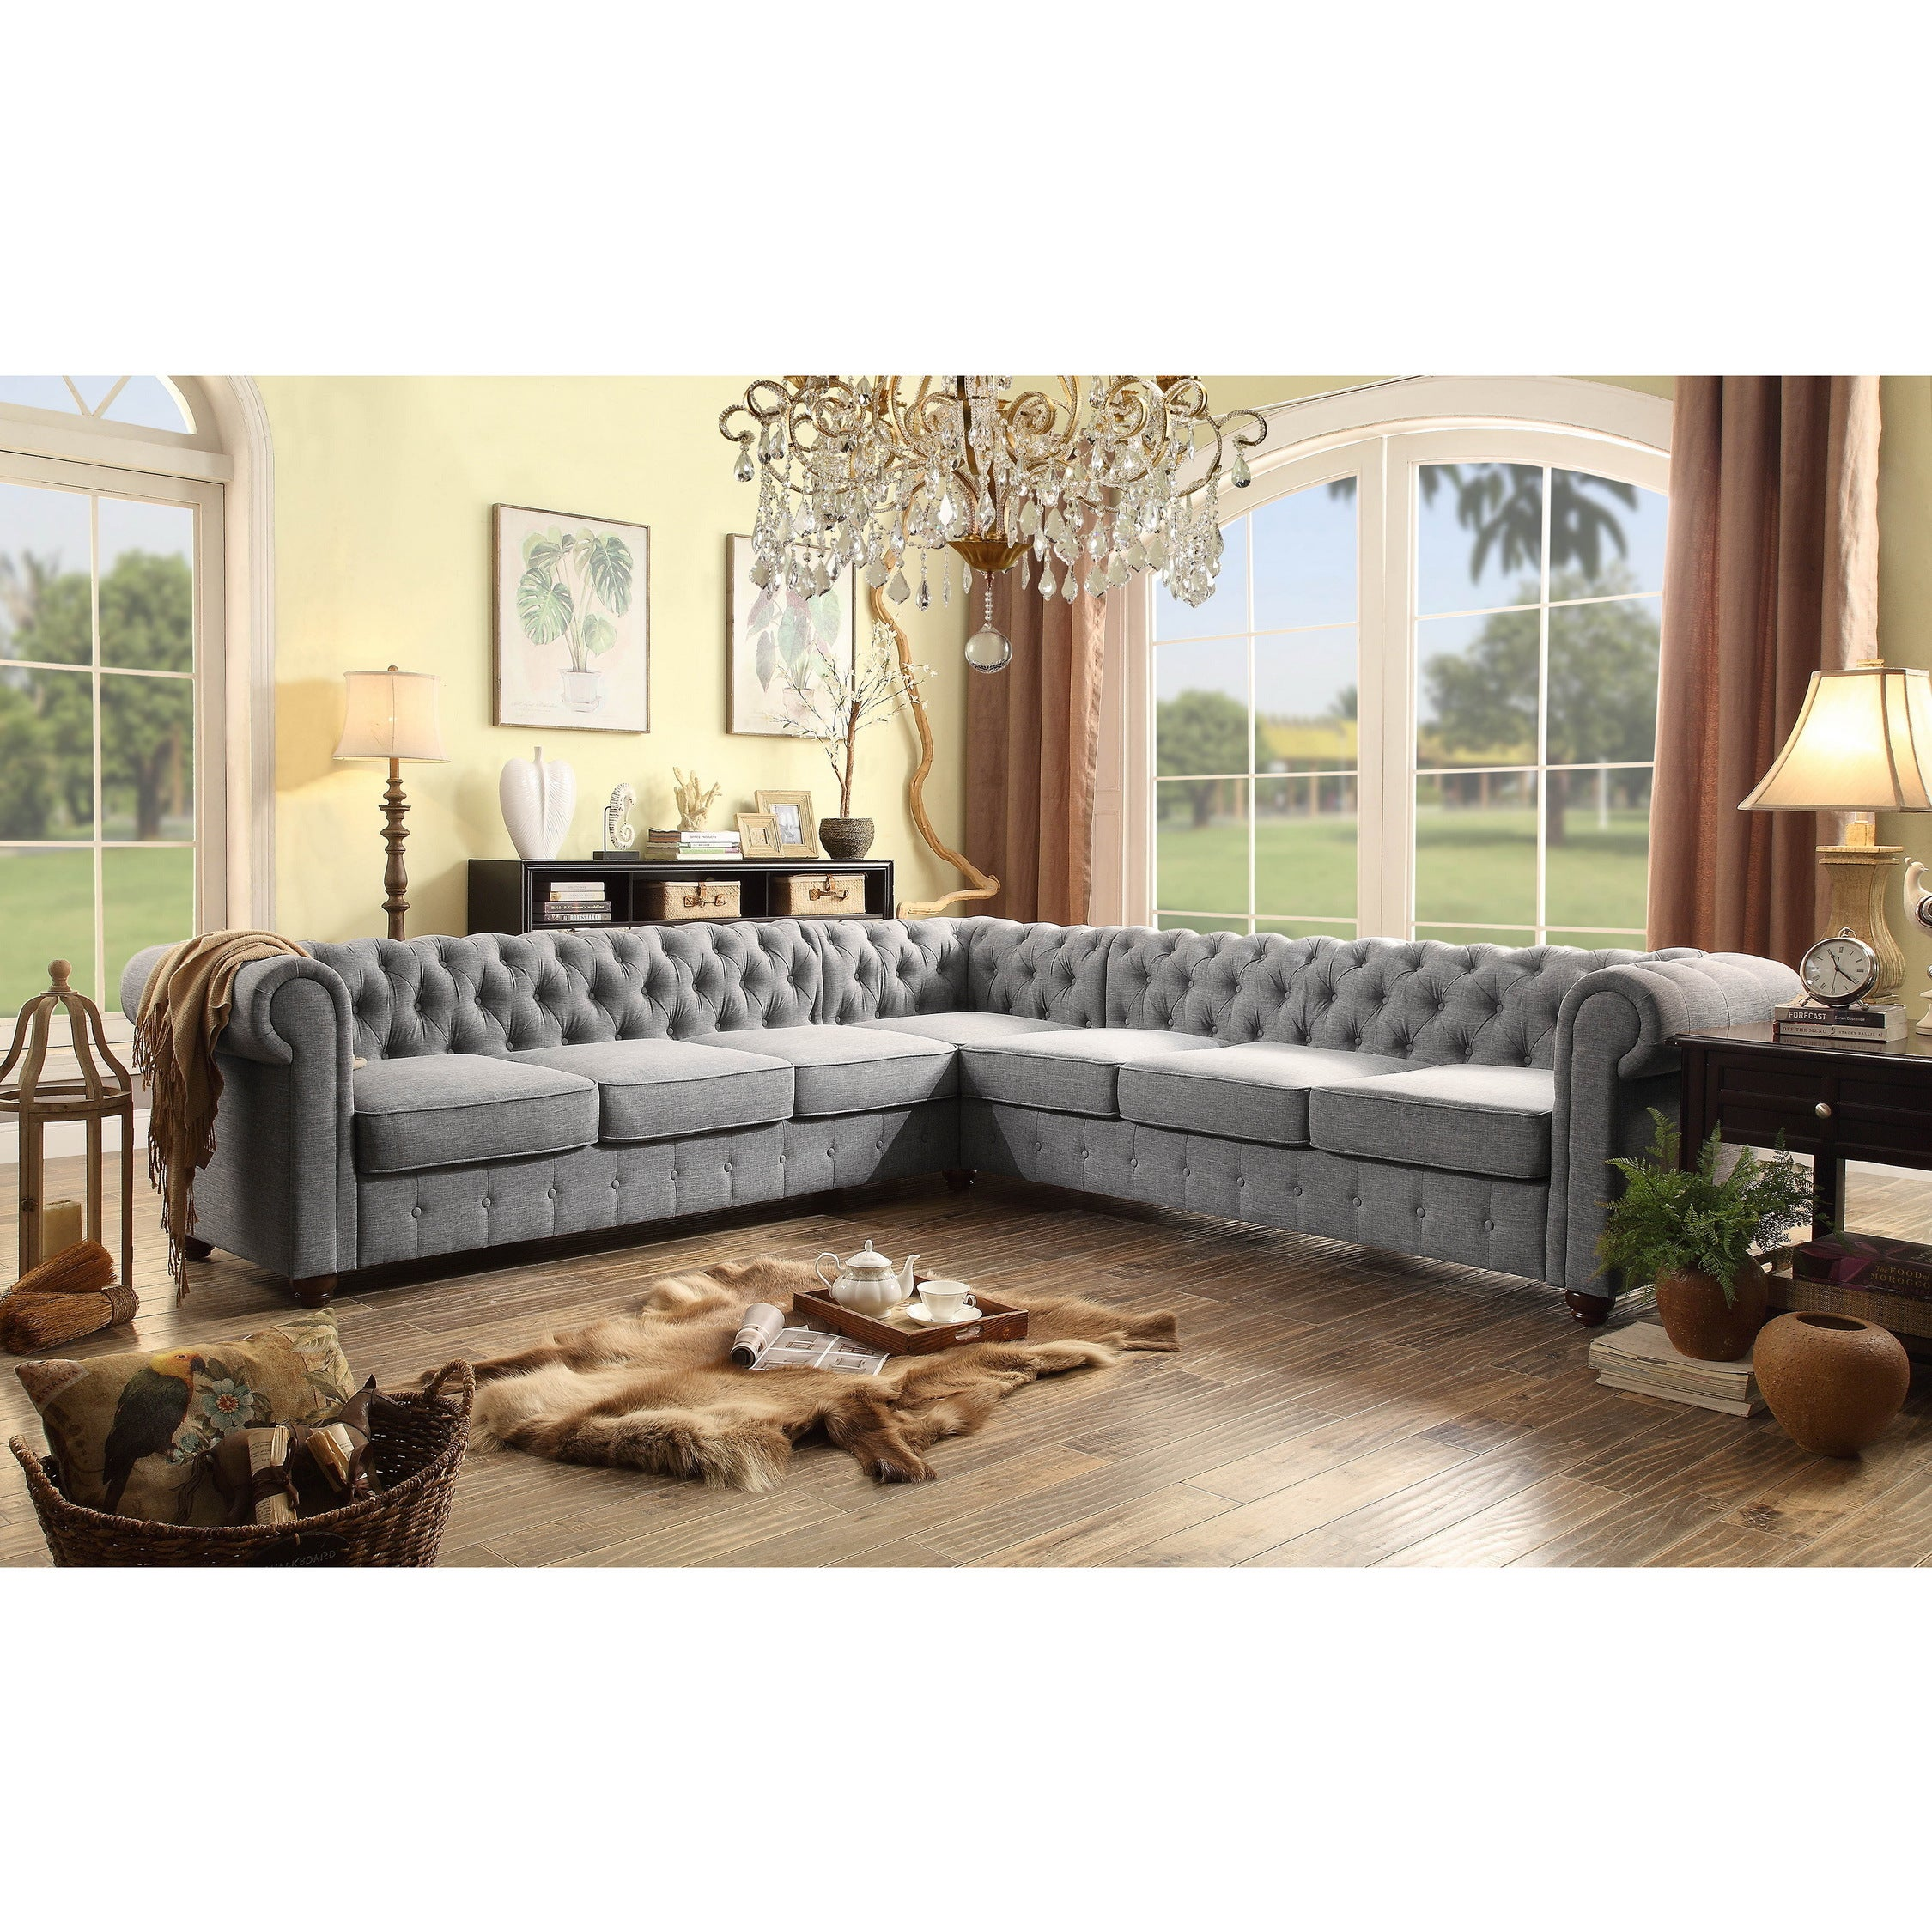 Vintage Sectional Sofas For Less